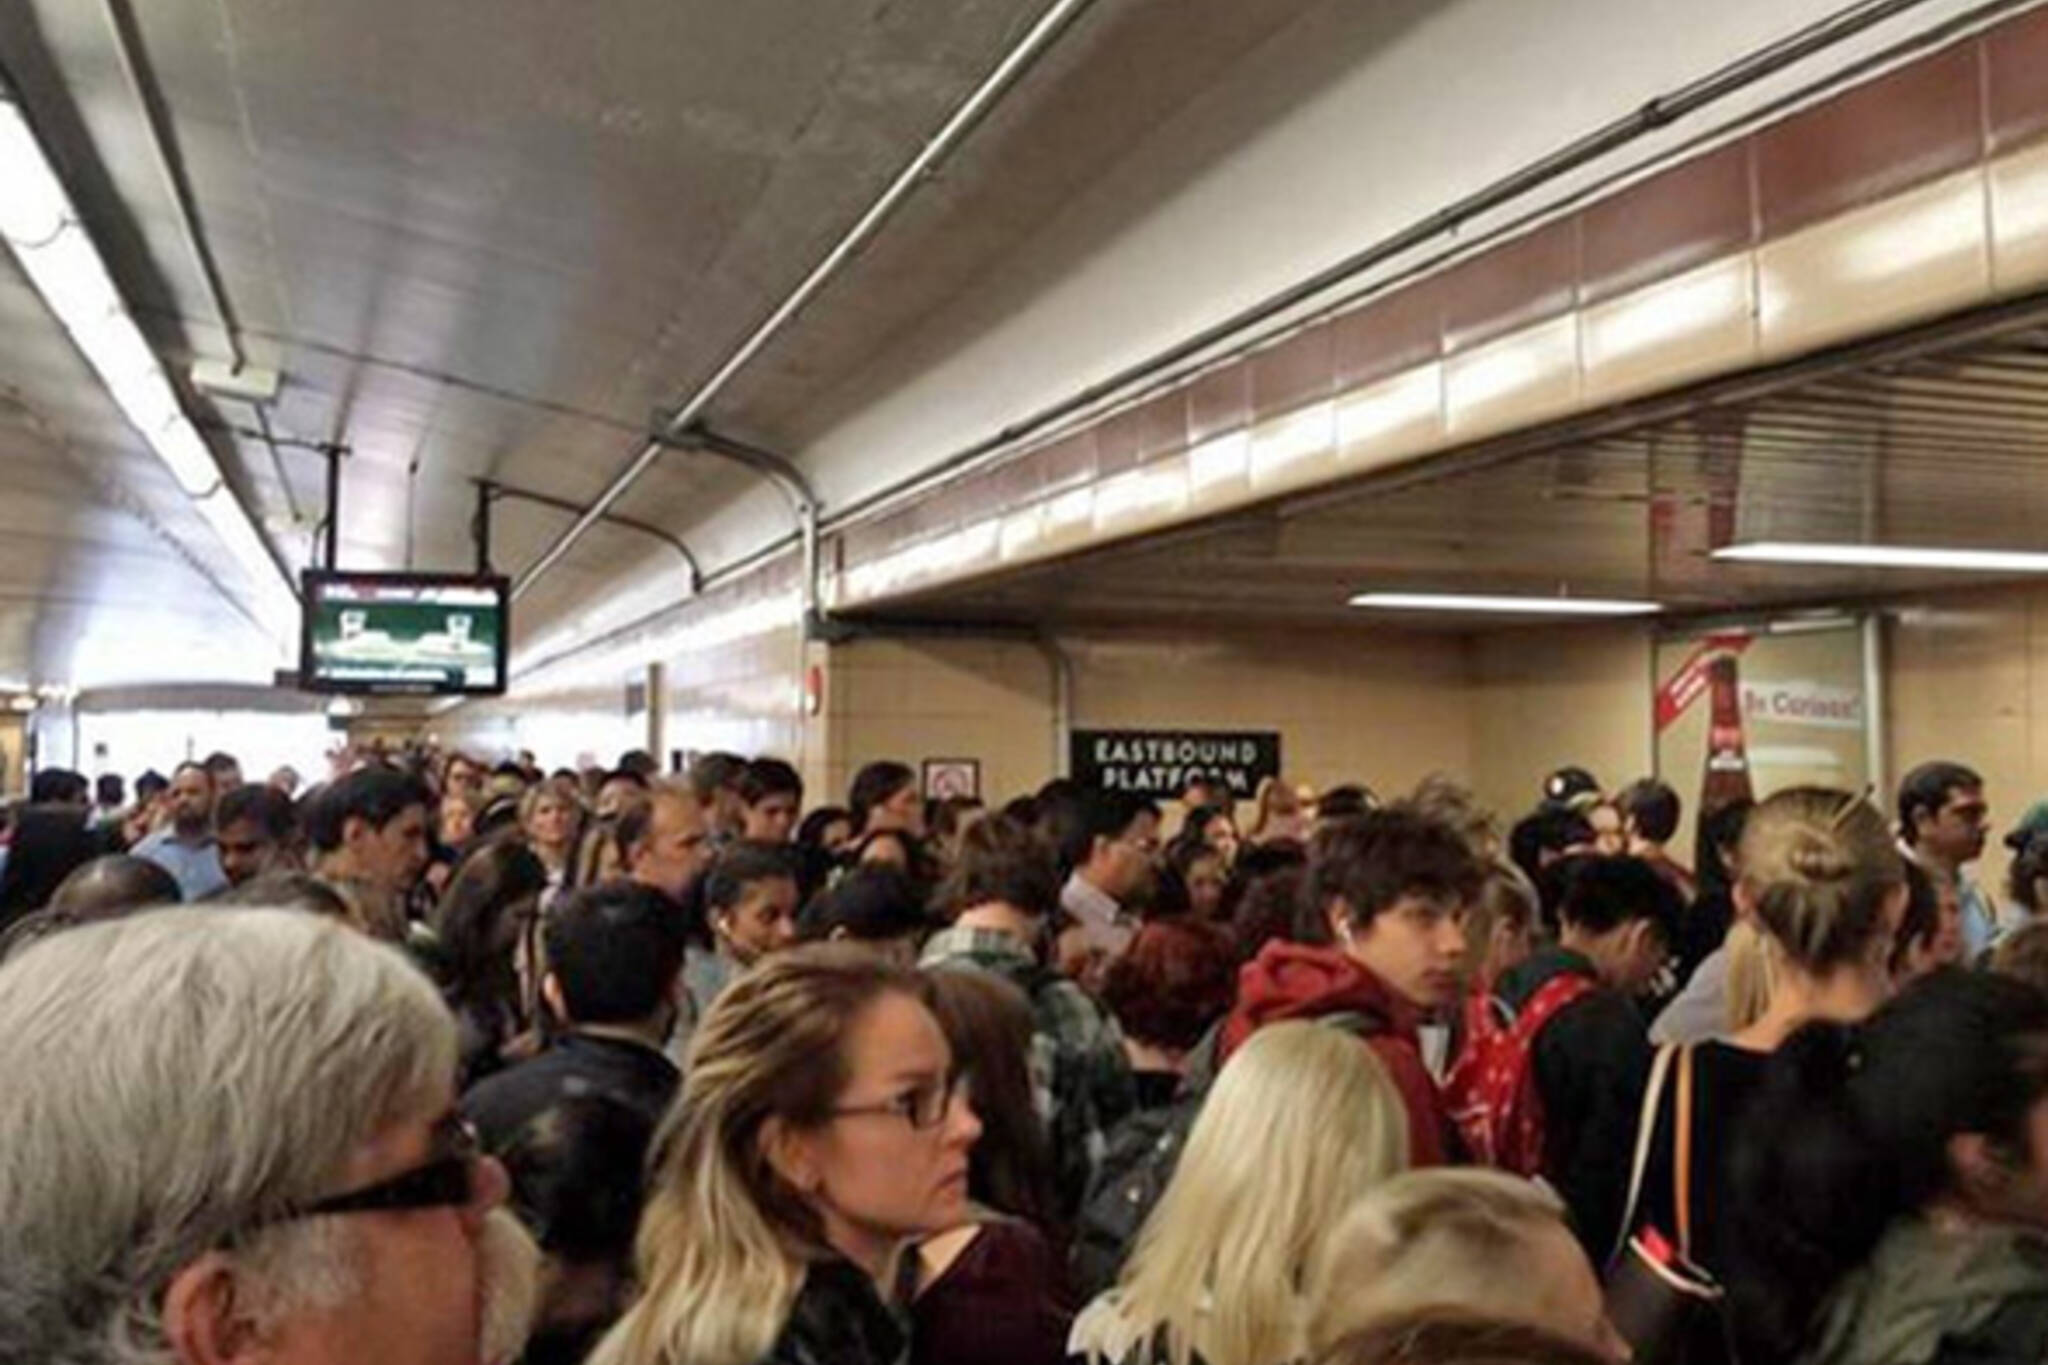 TTC shut down